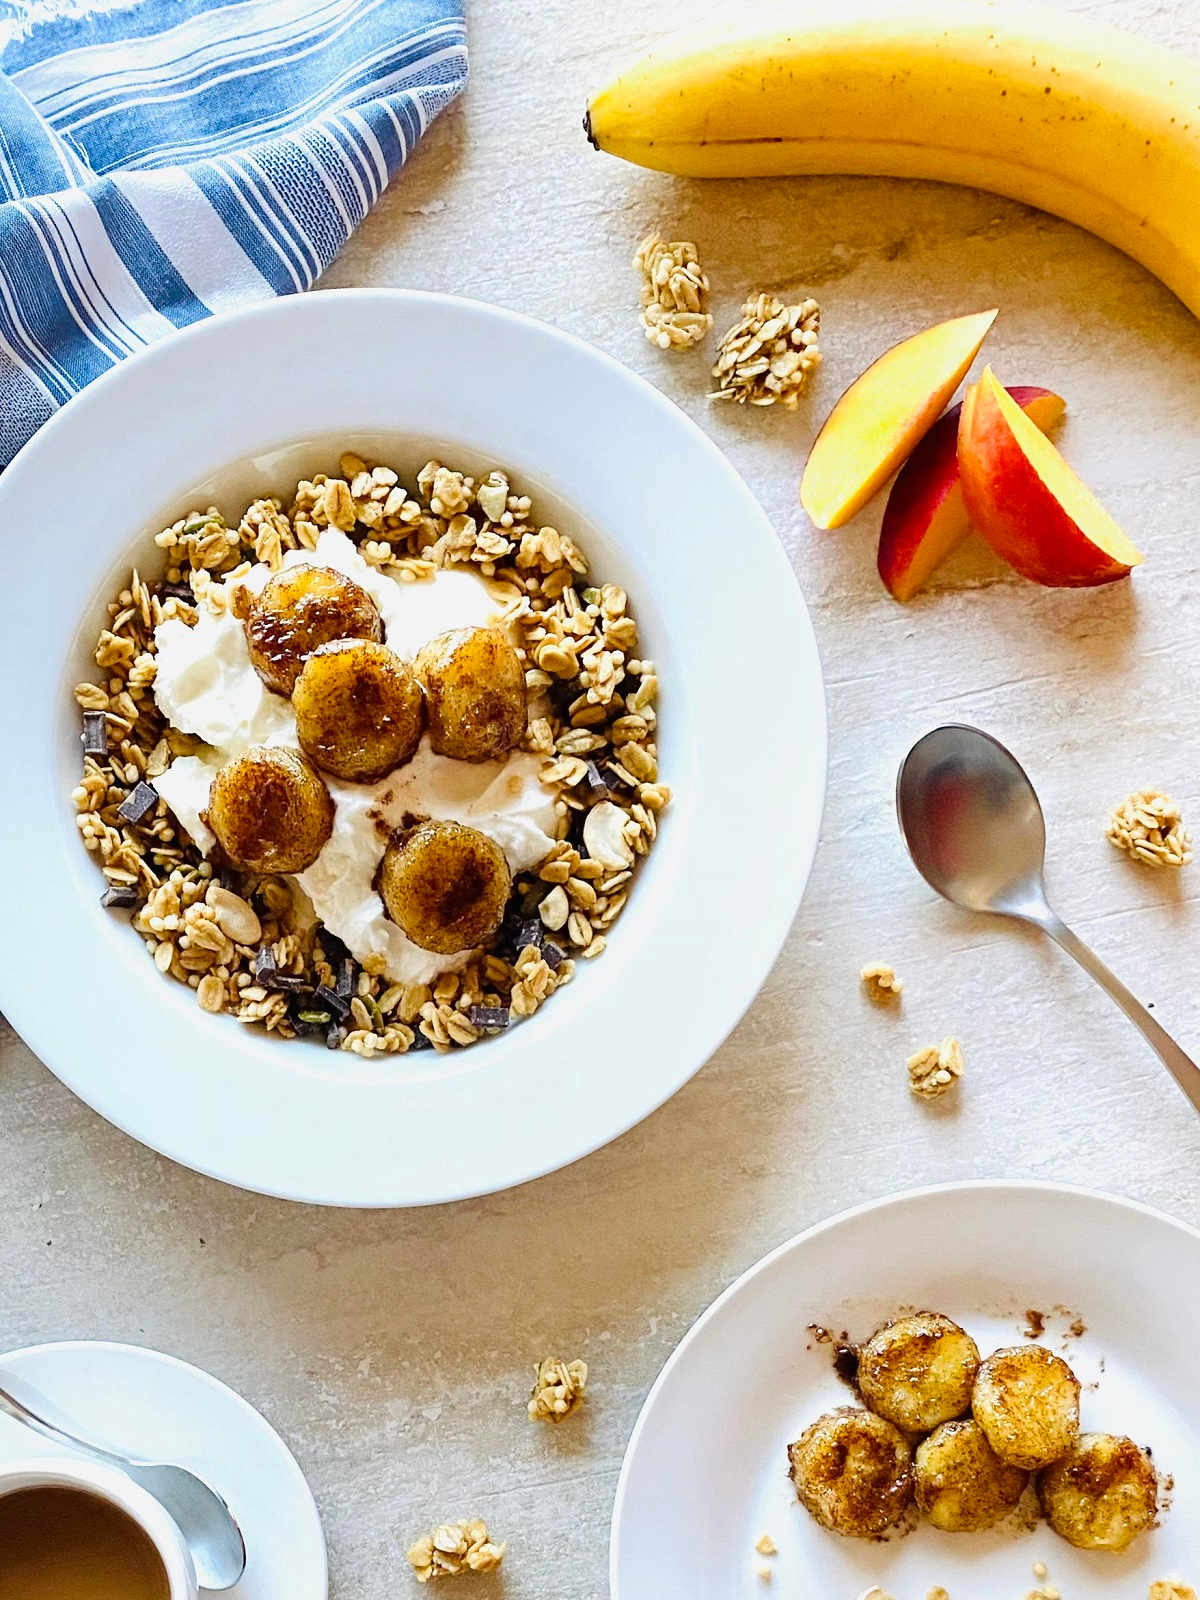 air fryer caramelized bananas in a bowl with yogurt and granola next to bananas and nectarines